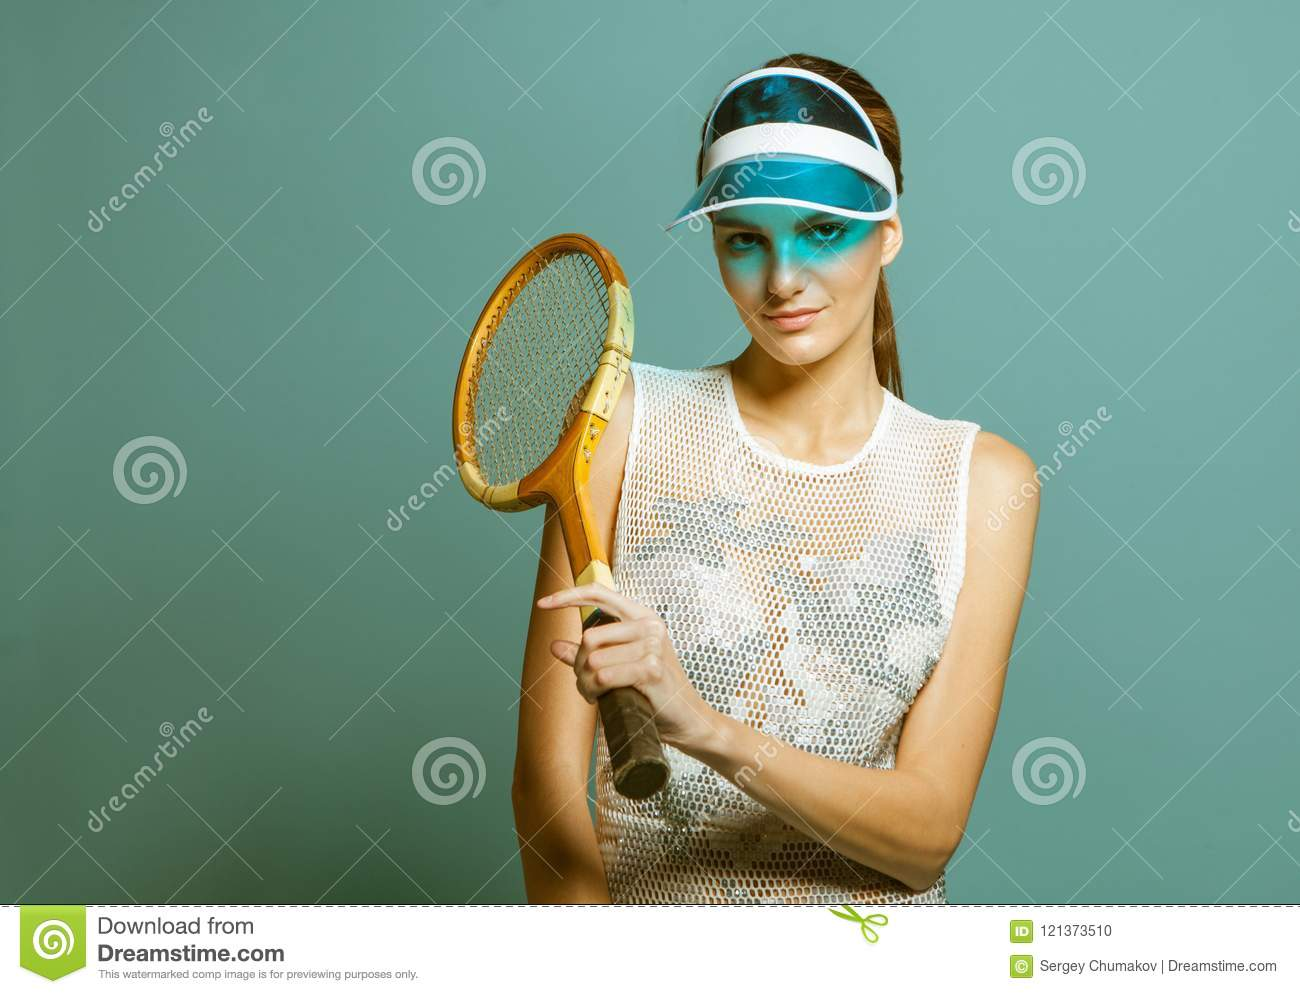 Young female tennis player in sun visor holding tennis racquet on blue  studio background 0143414bf3f